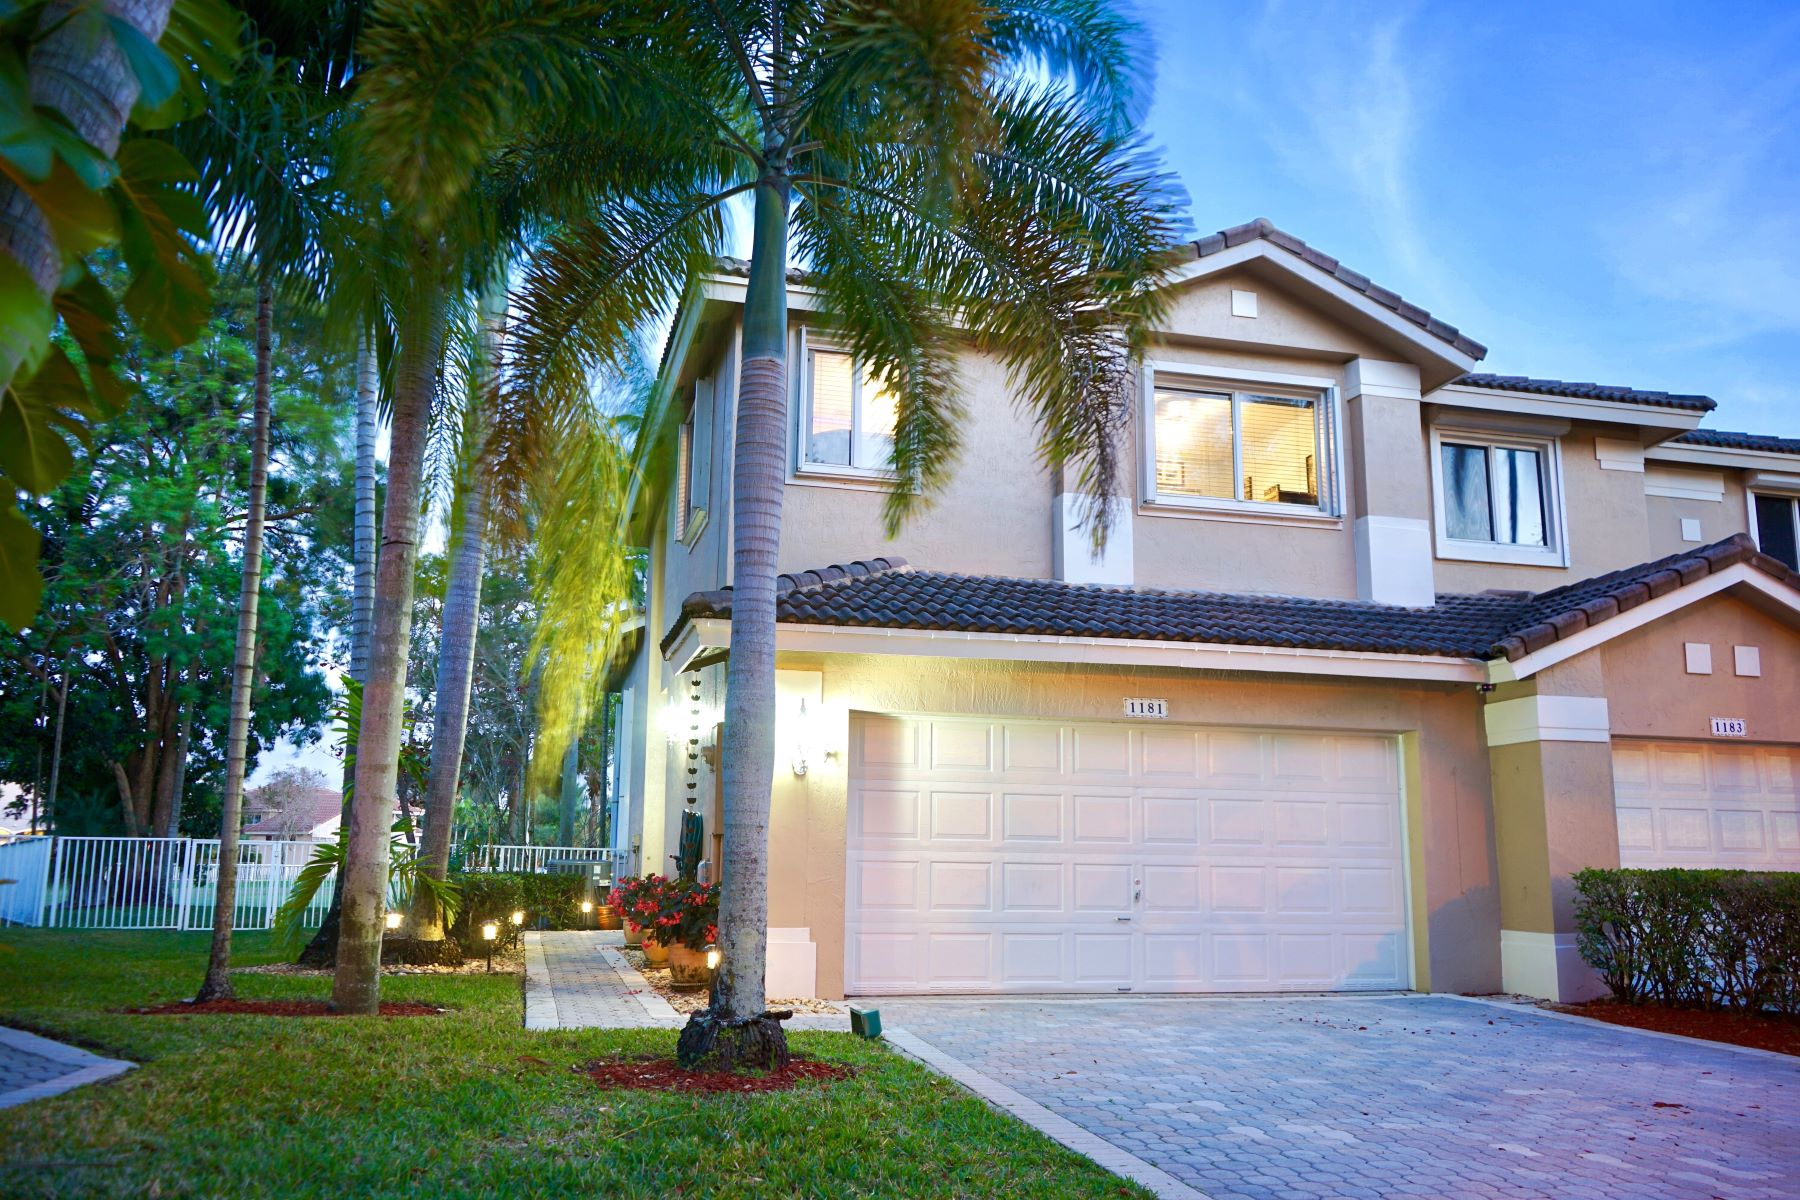 townhouses for Active at 1181 Sw 158th Ave Pembroke Pines, Florida 33027 United States